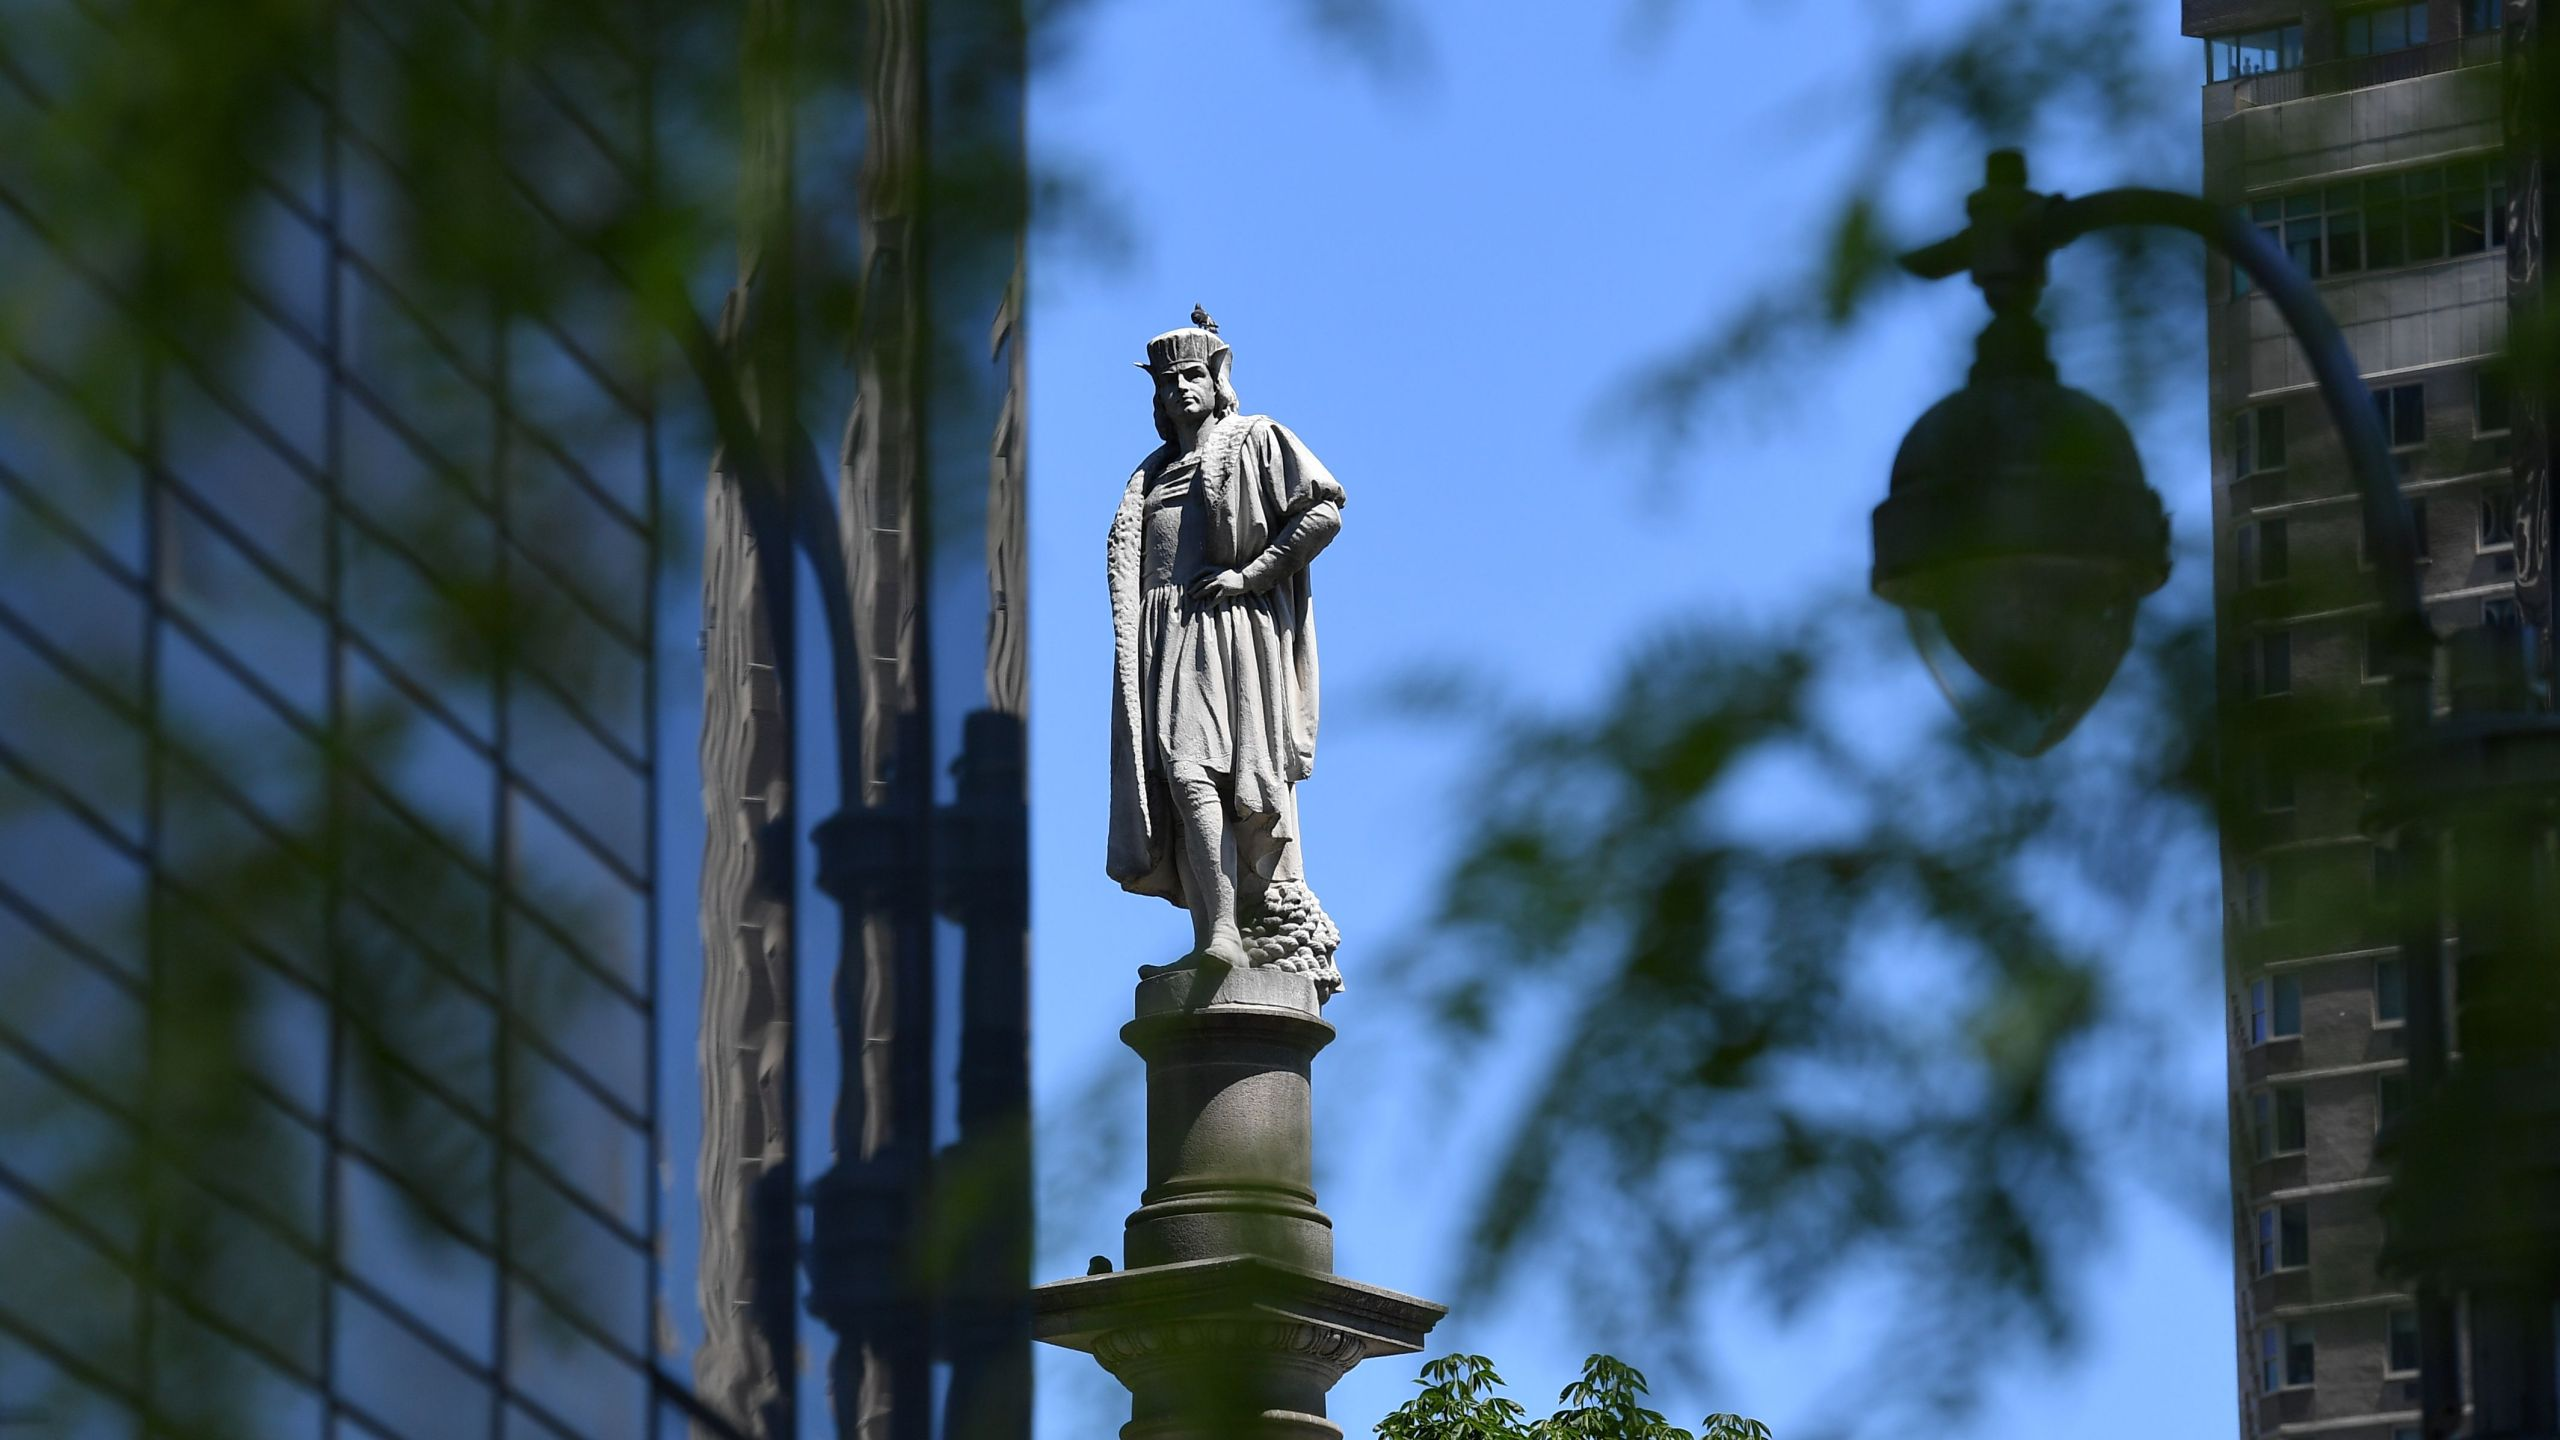 """The statue of Christopher Columbus on June 12, 2020, at Columbus Circle in New York City. Governor Andrew Cuomo defended the statue at the circle on June 11, 2020, as a symbol of """"Italian-American legacy"""" after calls to remove it mounted. - Statues of Christopher Columbus from Boston to Miami have been beheaded and vandalized as calls to remove sculptures commemorating colonizers and slavers sweep America on the back of anti-racism protests sparked by the death of George Floyd. (Photo by Angela Weiss / AFP) (Photo by ANGELA WEISS/AFP via Getty Images)"""